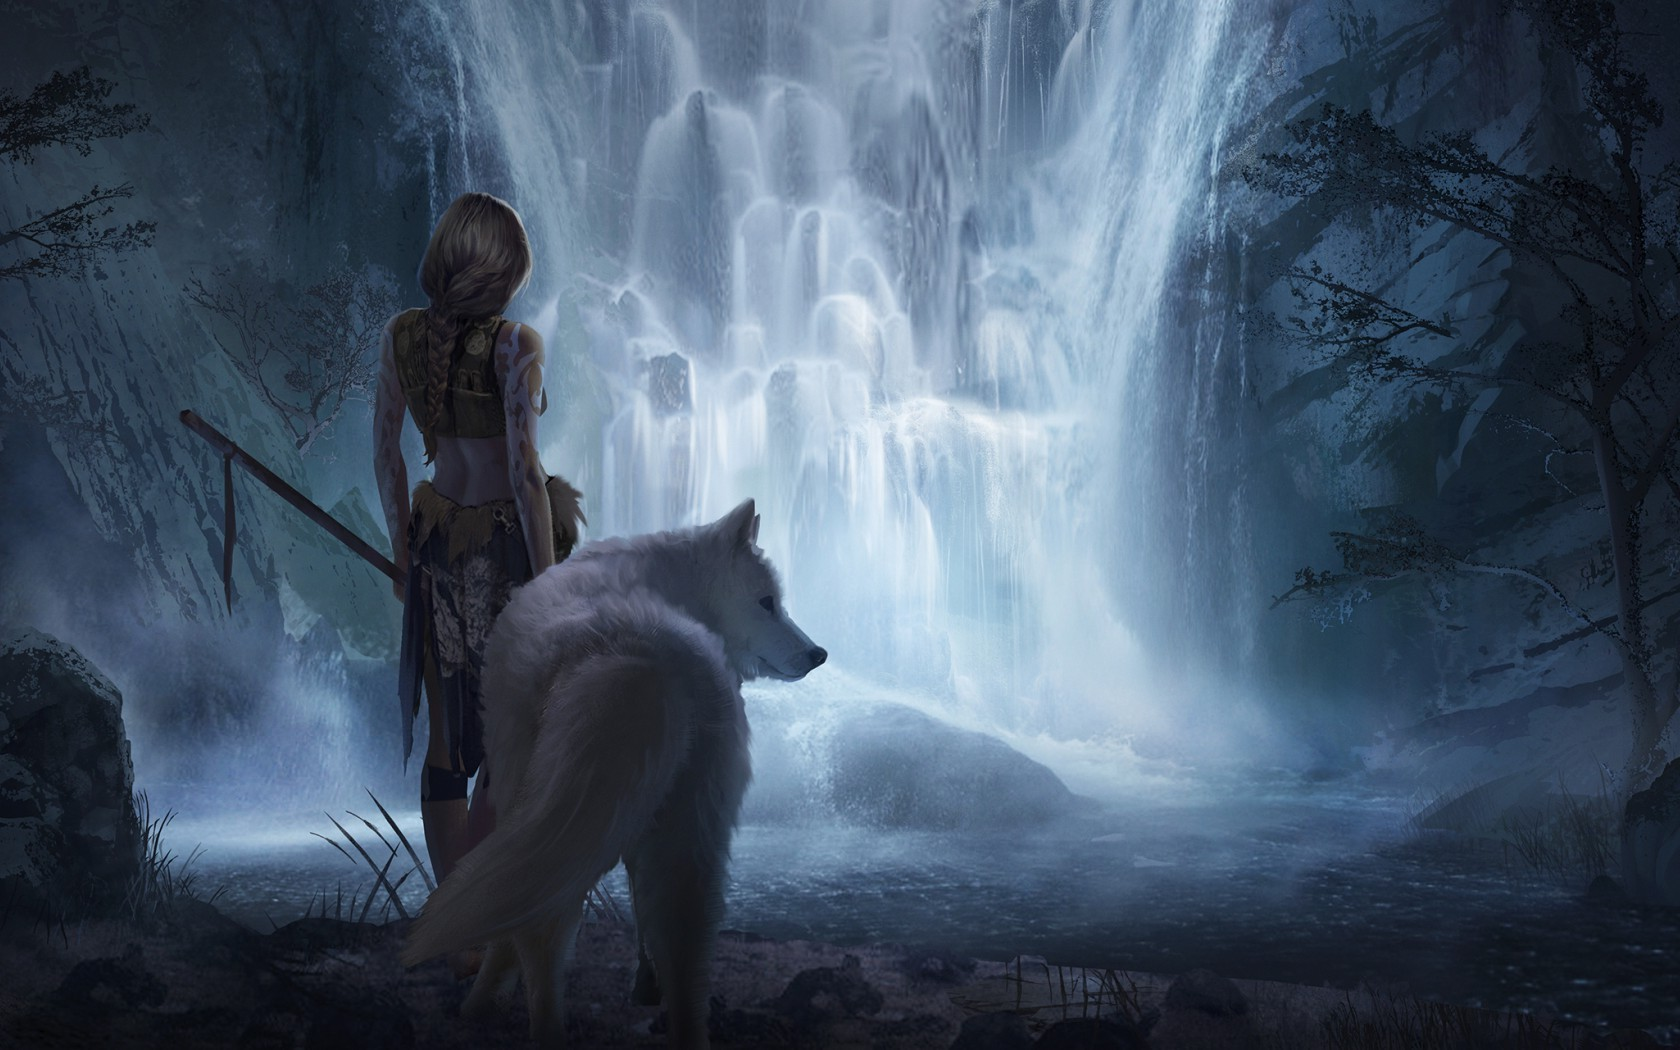 W Lfe Fantasy Wallpaper Desktop Hd U2022 Rh Greenmamahk Store Magecloud Net HD Wolf Drawings Spirit